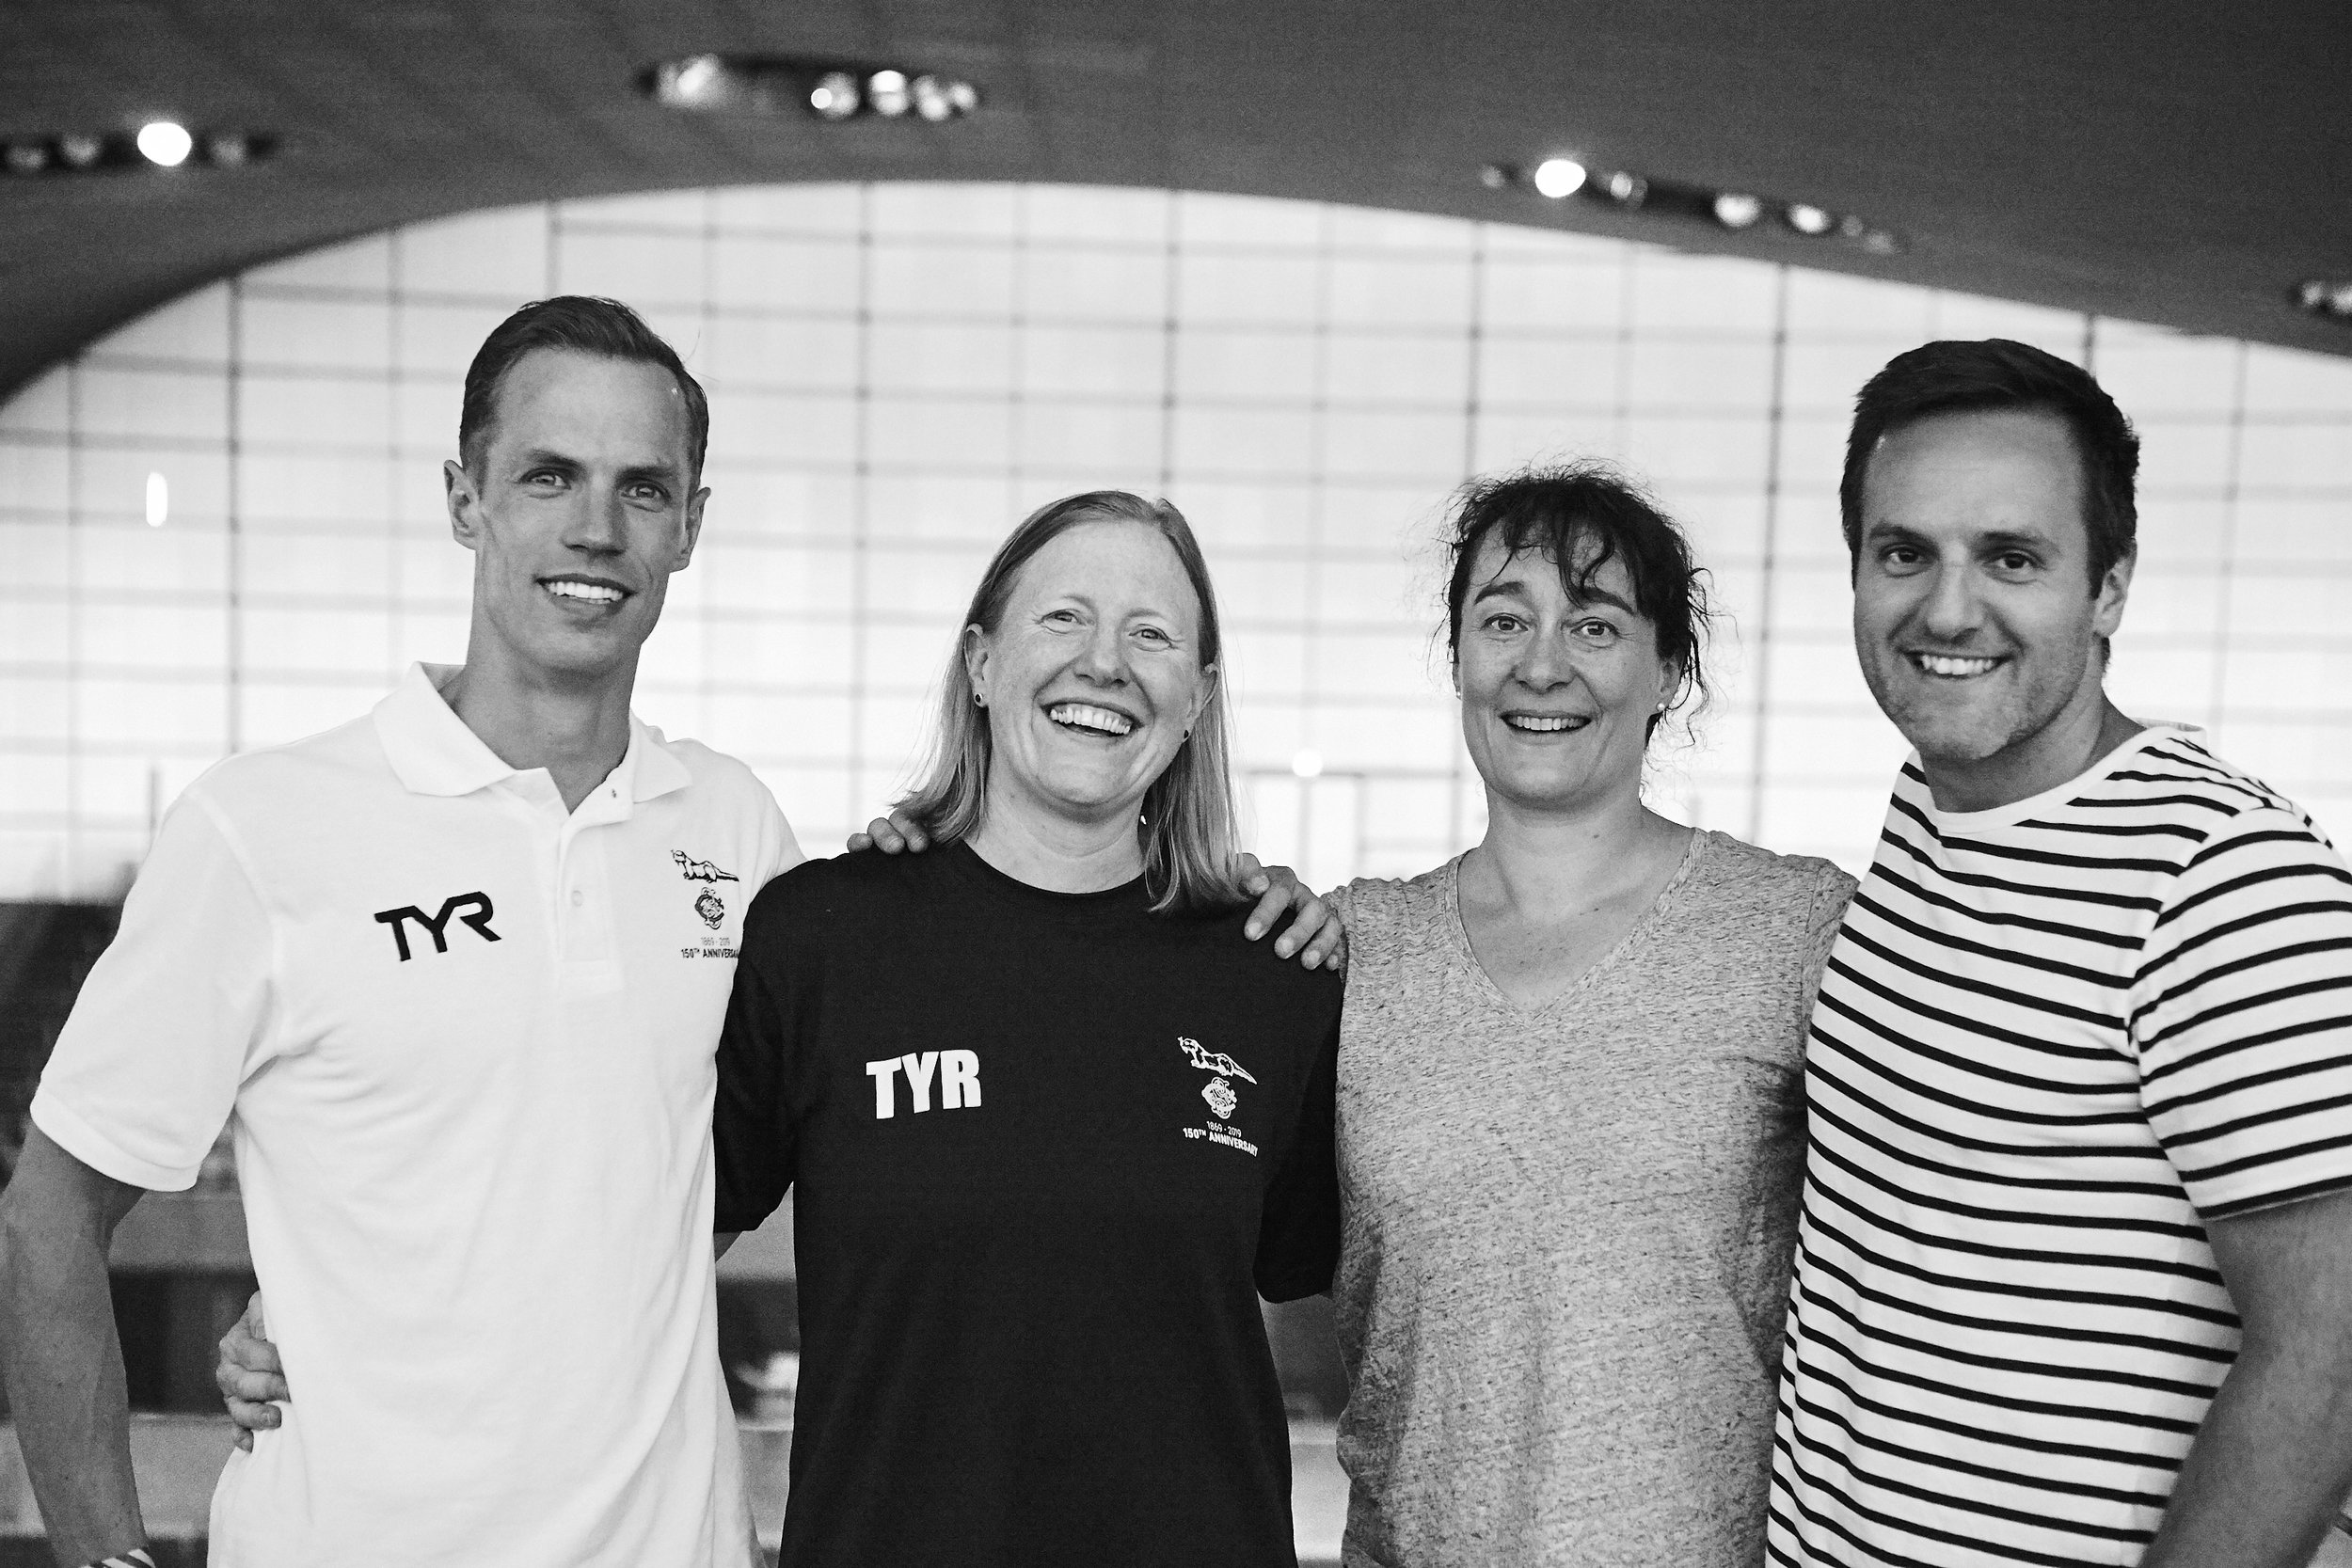 Swimming Organising Committee (L-R): Ollie Caldwell, Gina Hobson, Jane McMenemy, Ben Thomas.